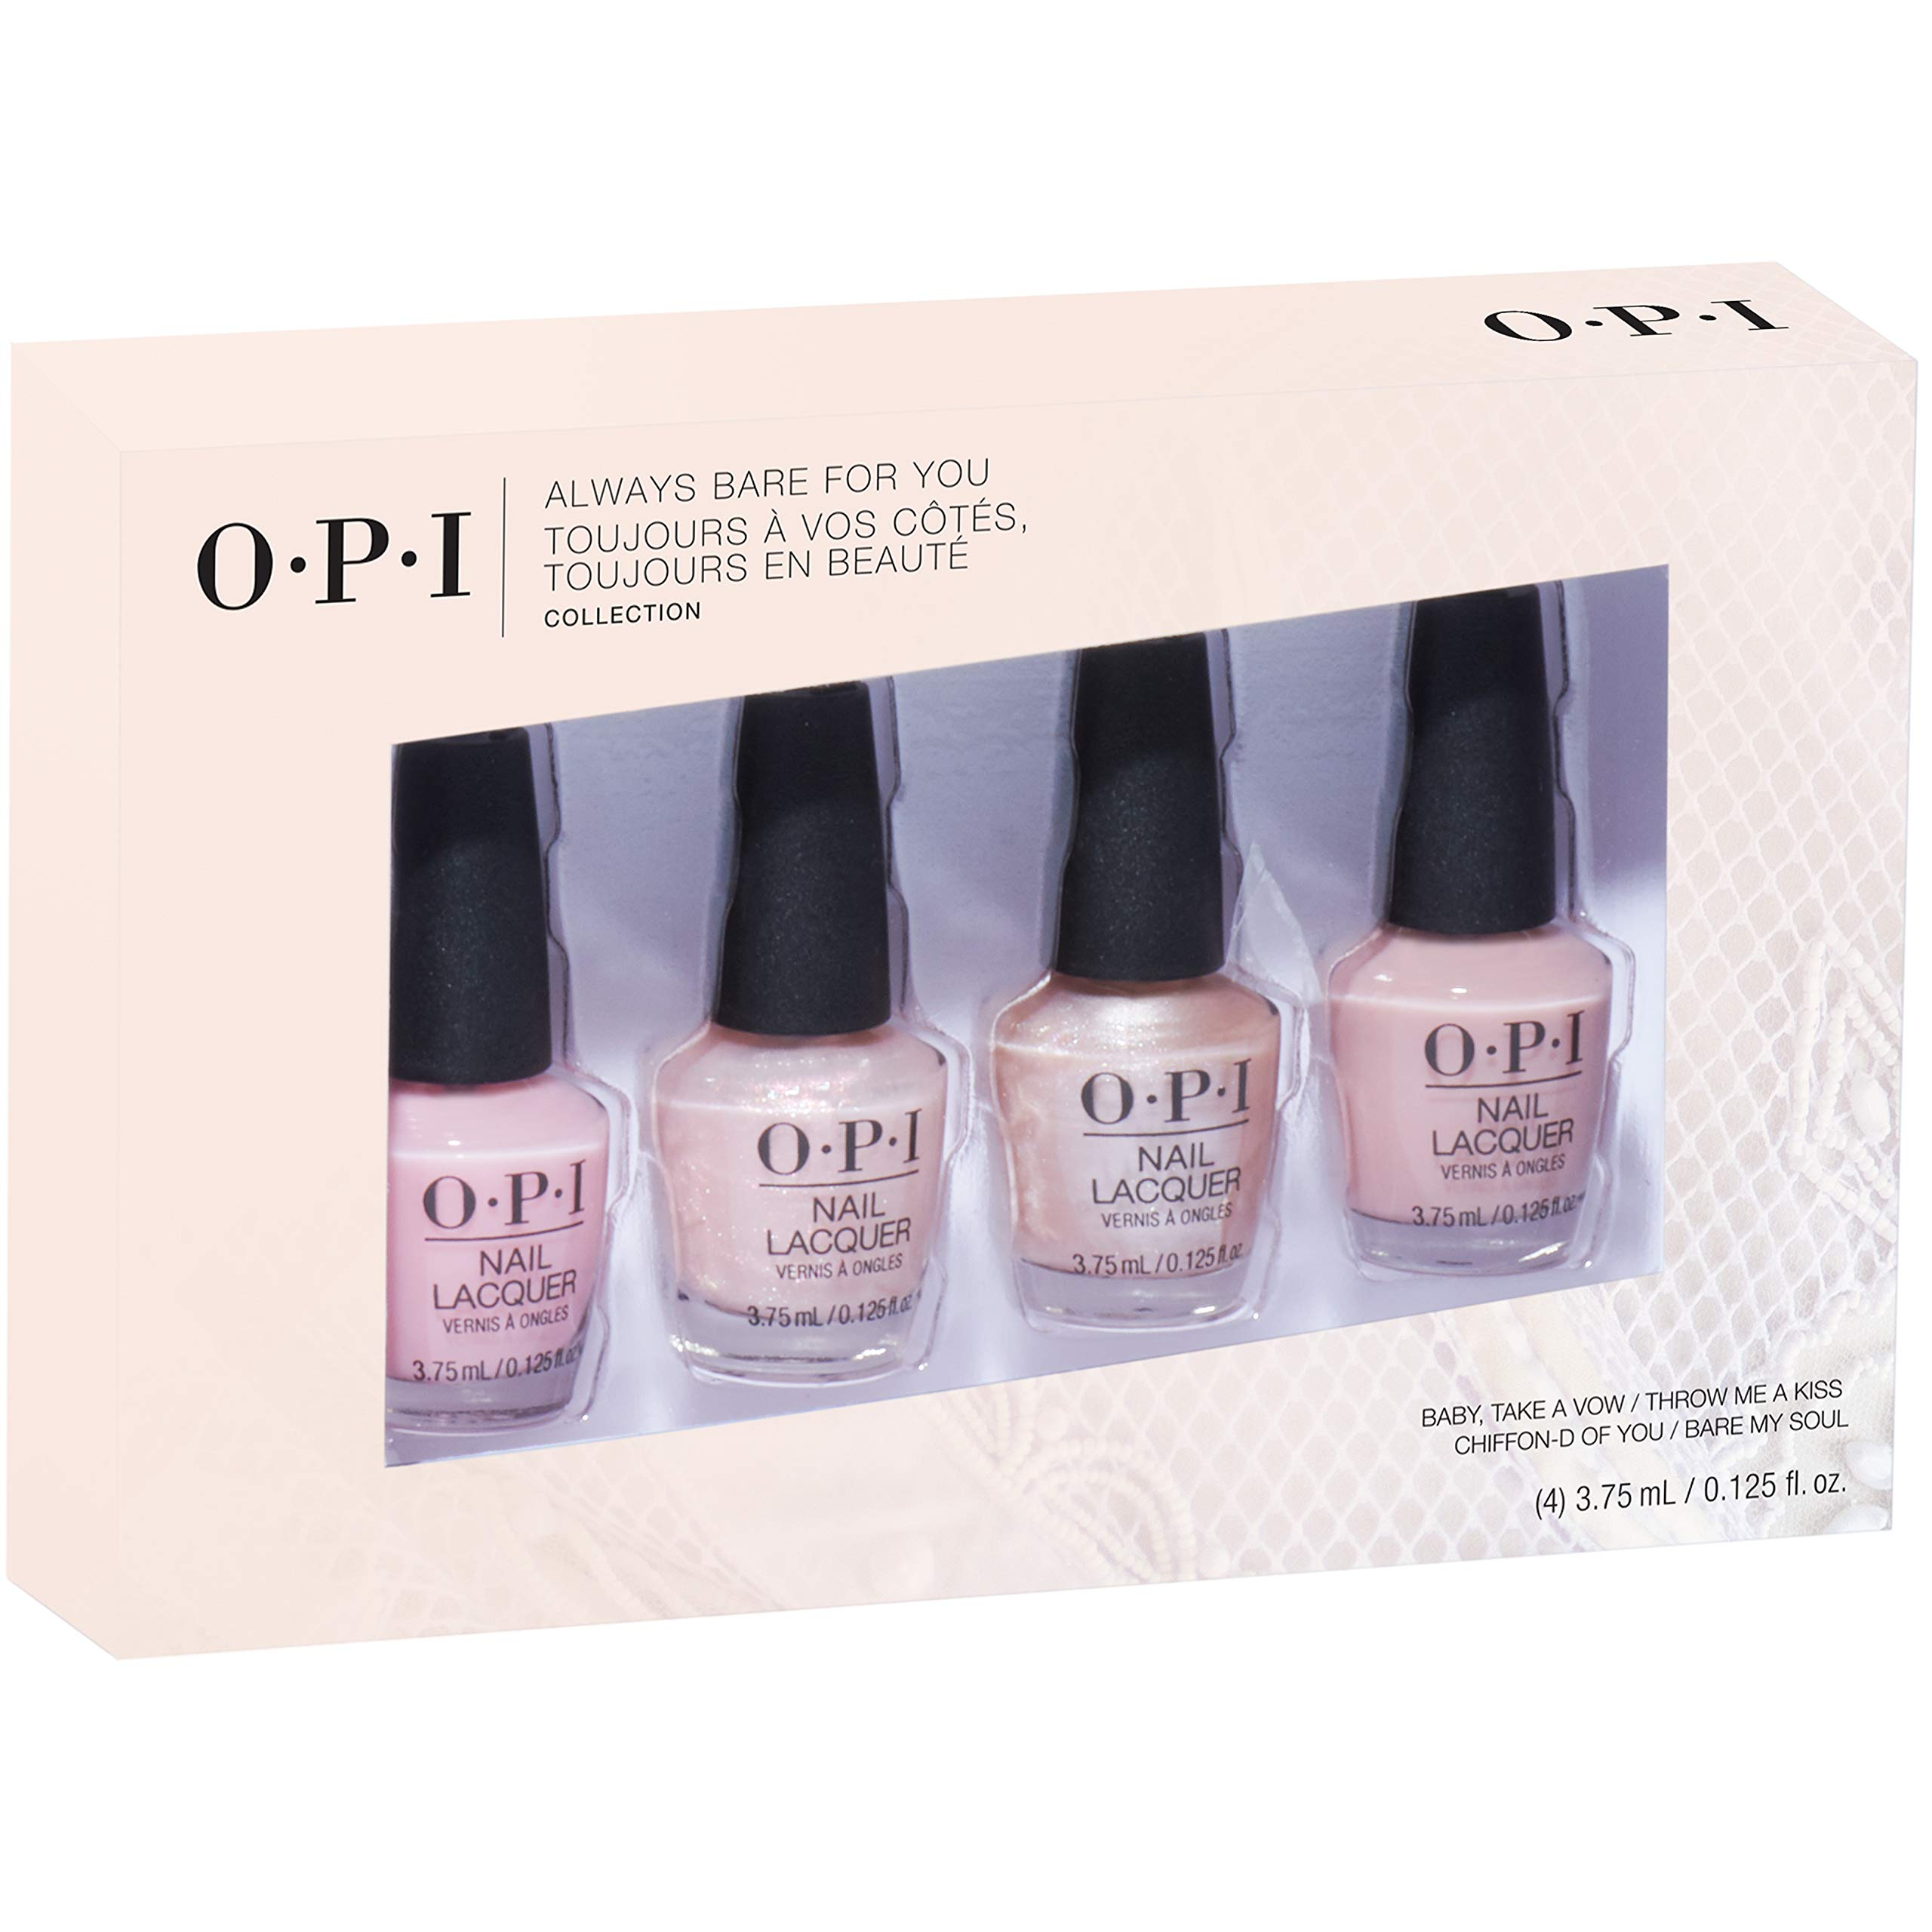 Opi Nail Polish Sheers Collection Nail Polish Gift Sets